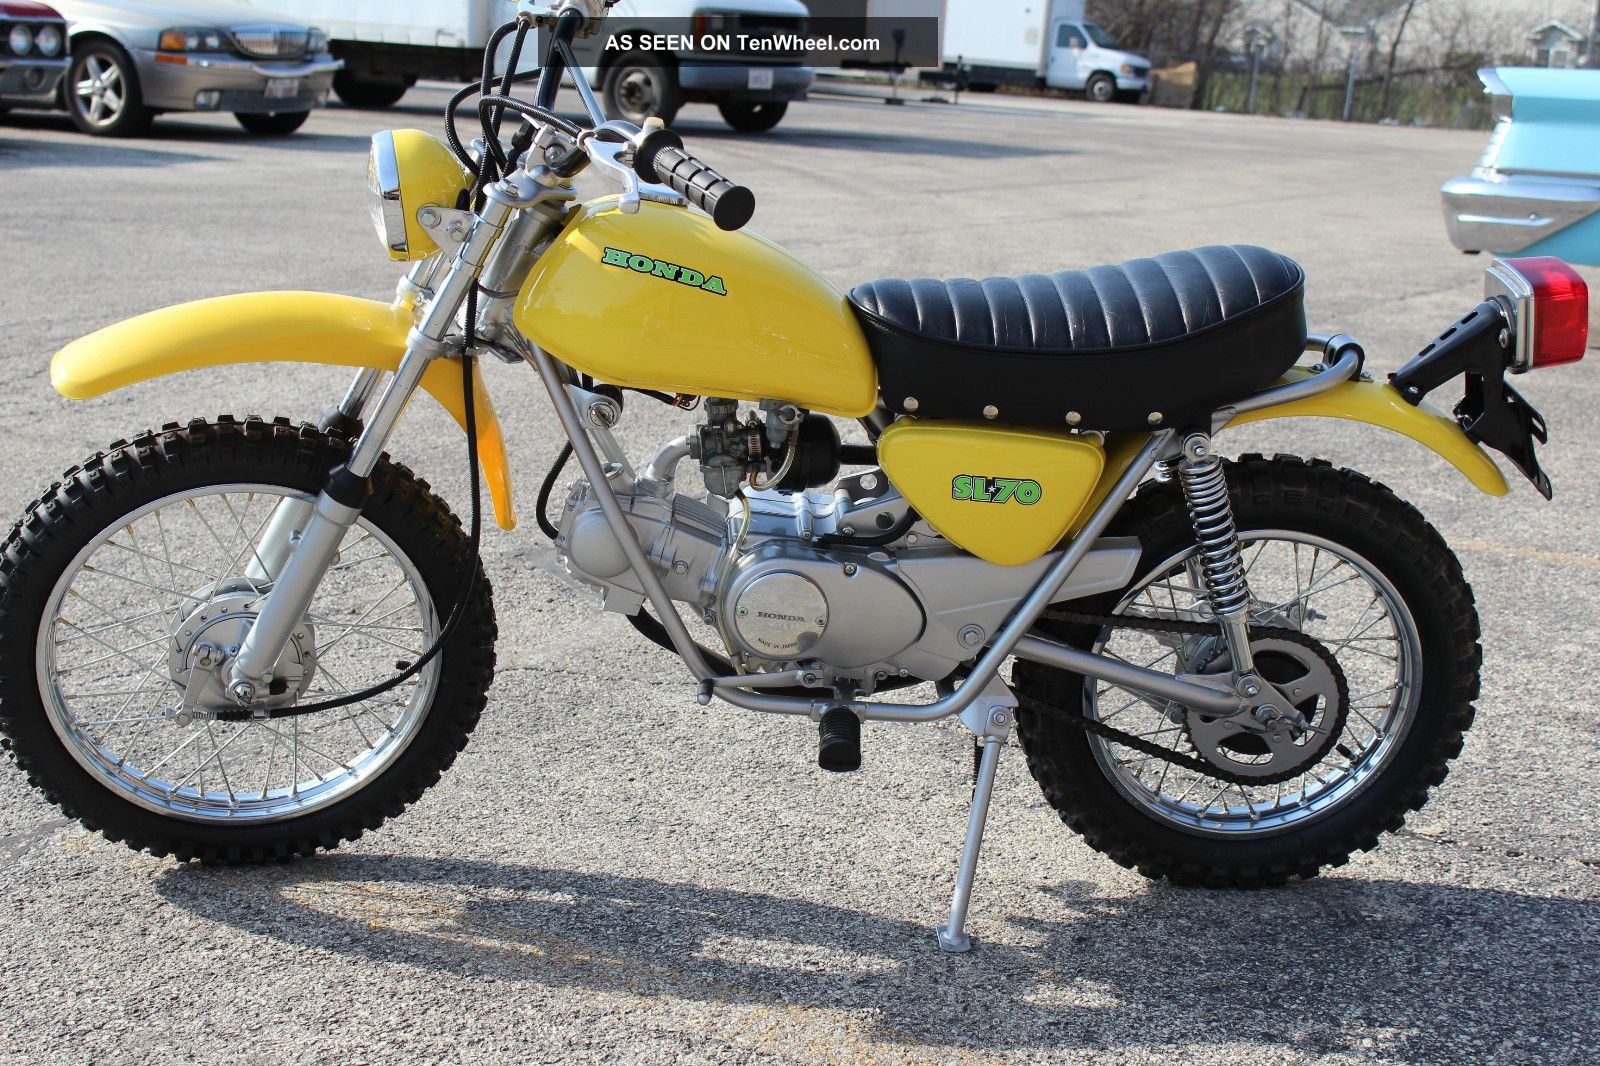 Honda Sl Motorcycles For Sale